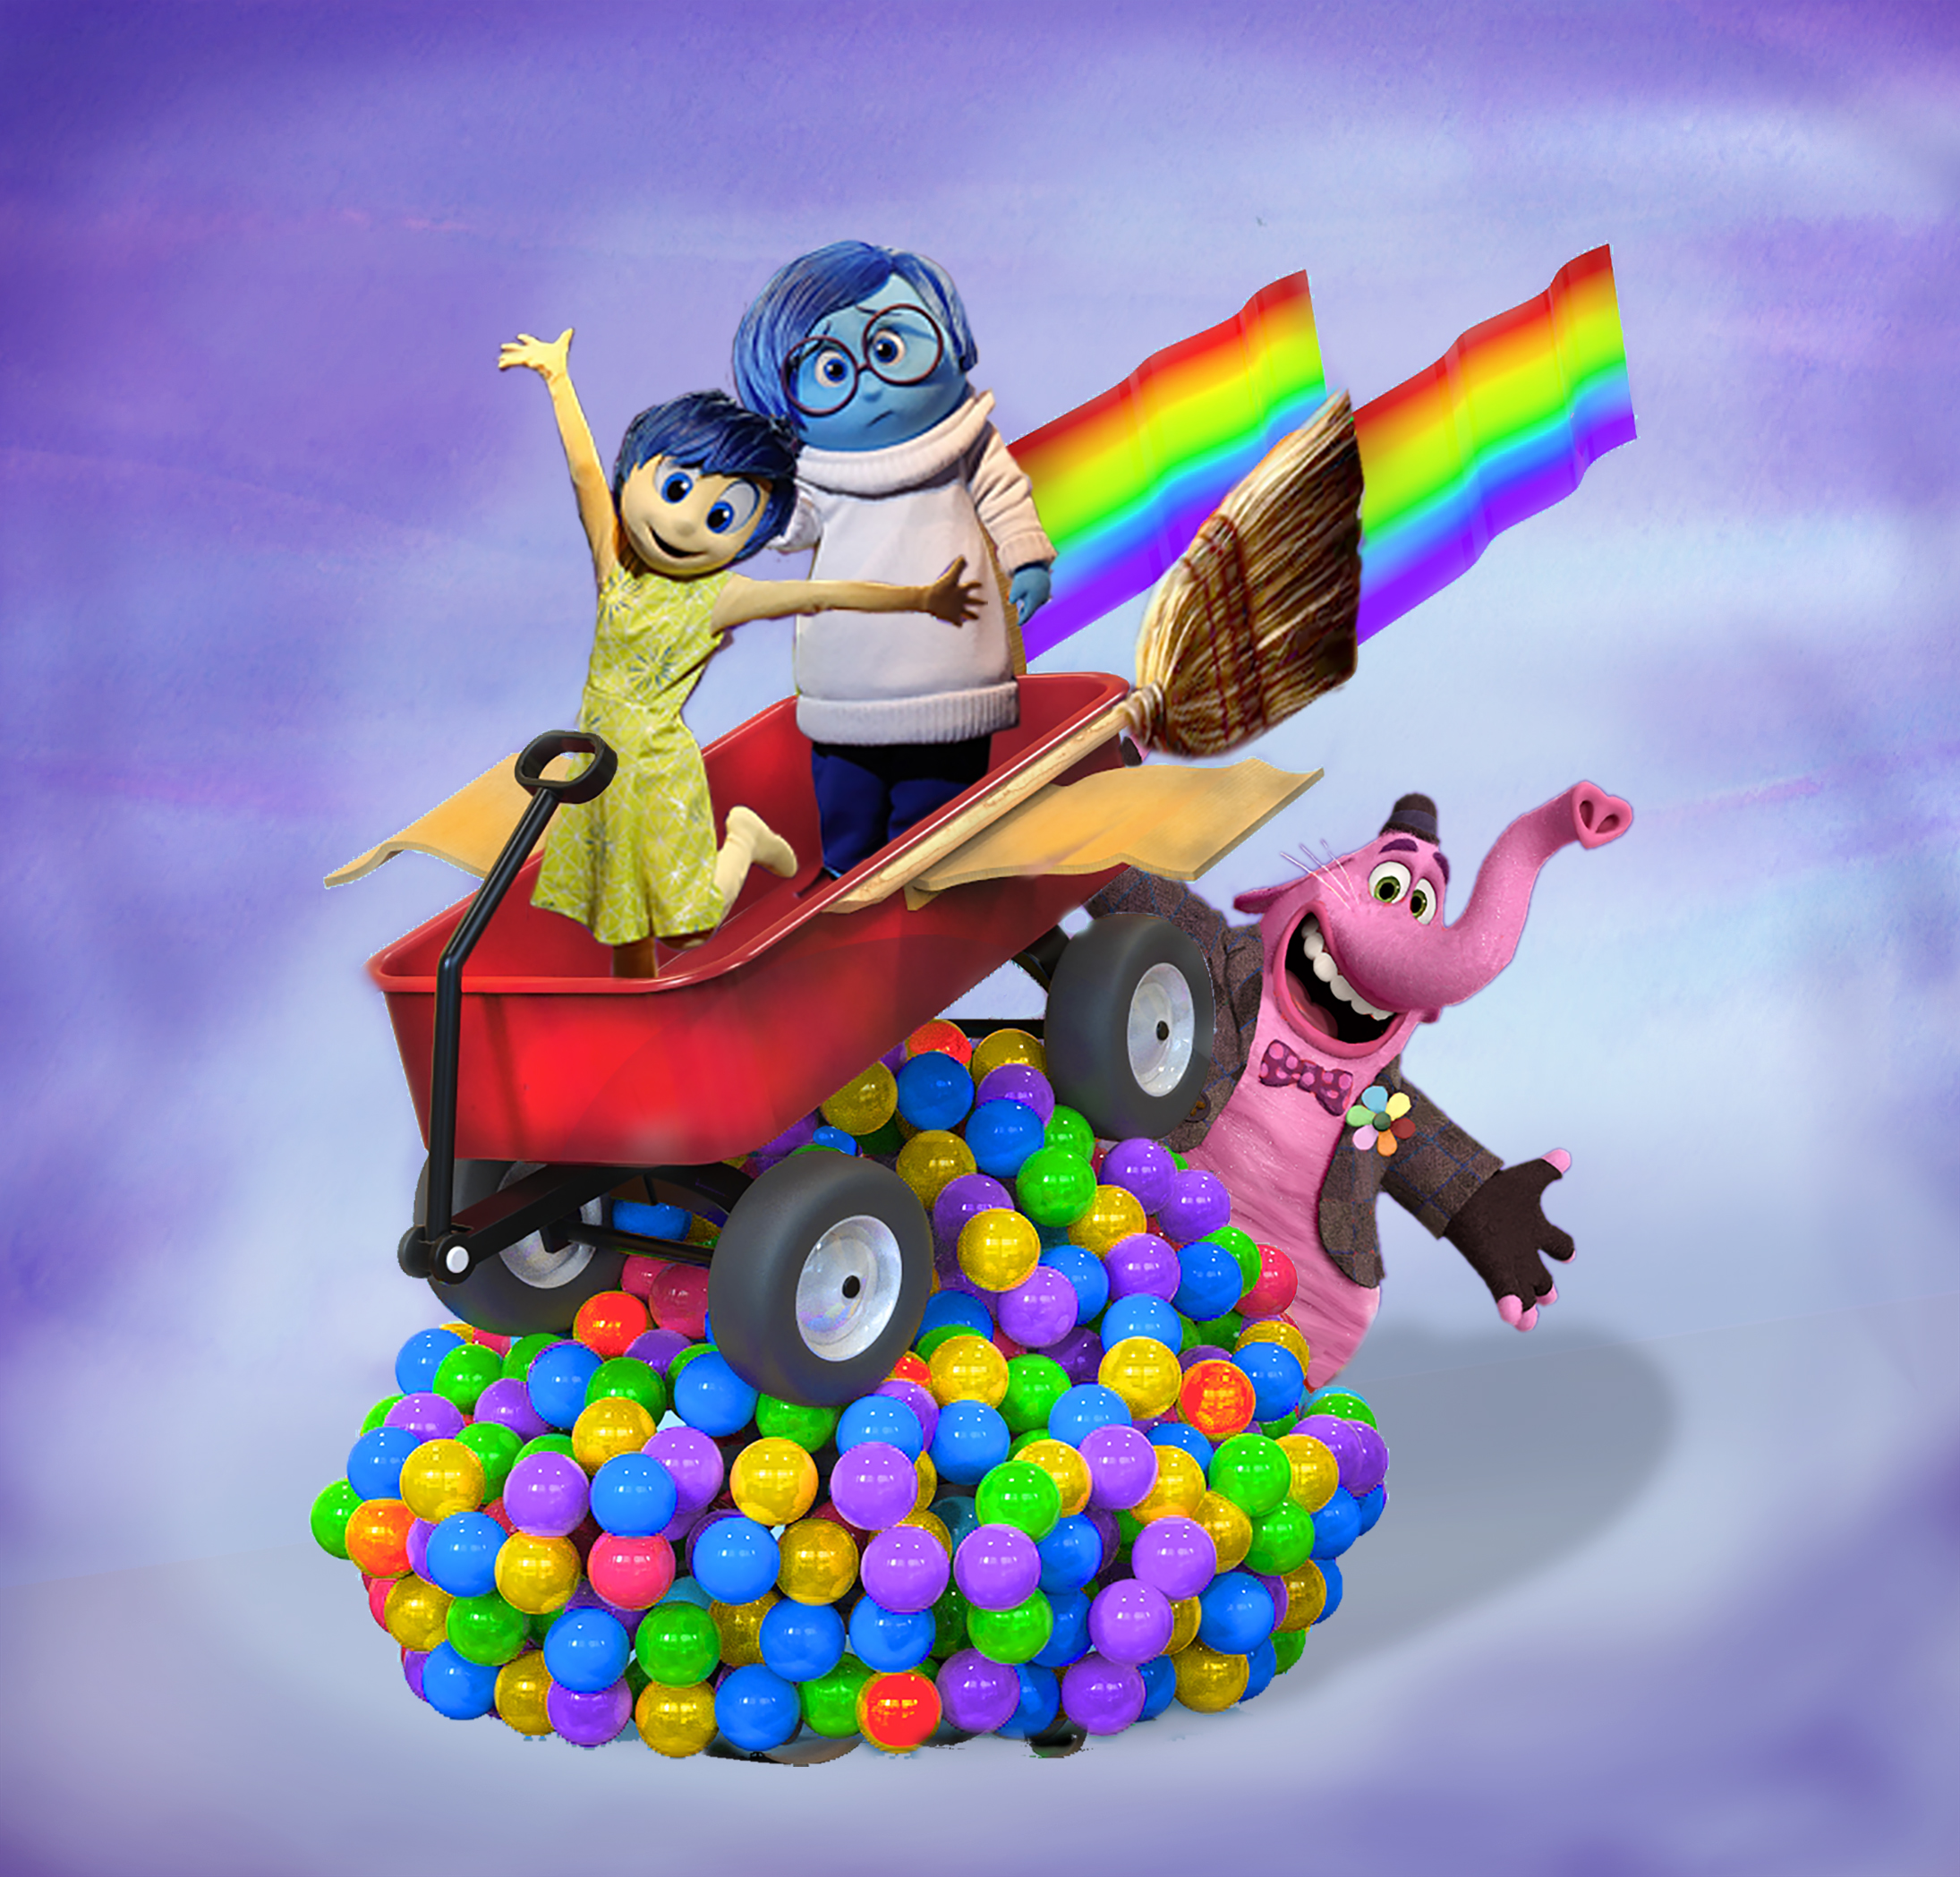 """Another popular Pixar story coming to Pixar Play Parade is """"Inside Out."""" Perched atop colorful memory orbs, Joy and Sadness take flight aboard Bing Bong's rocket wagon, with Bing Bong himself cheering them on!"""